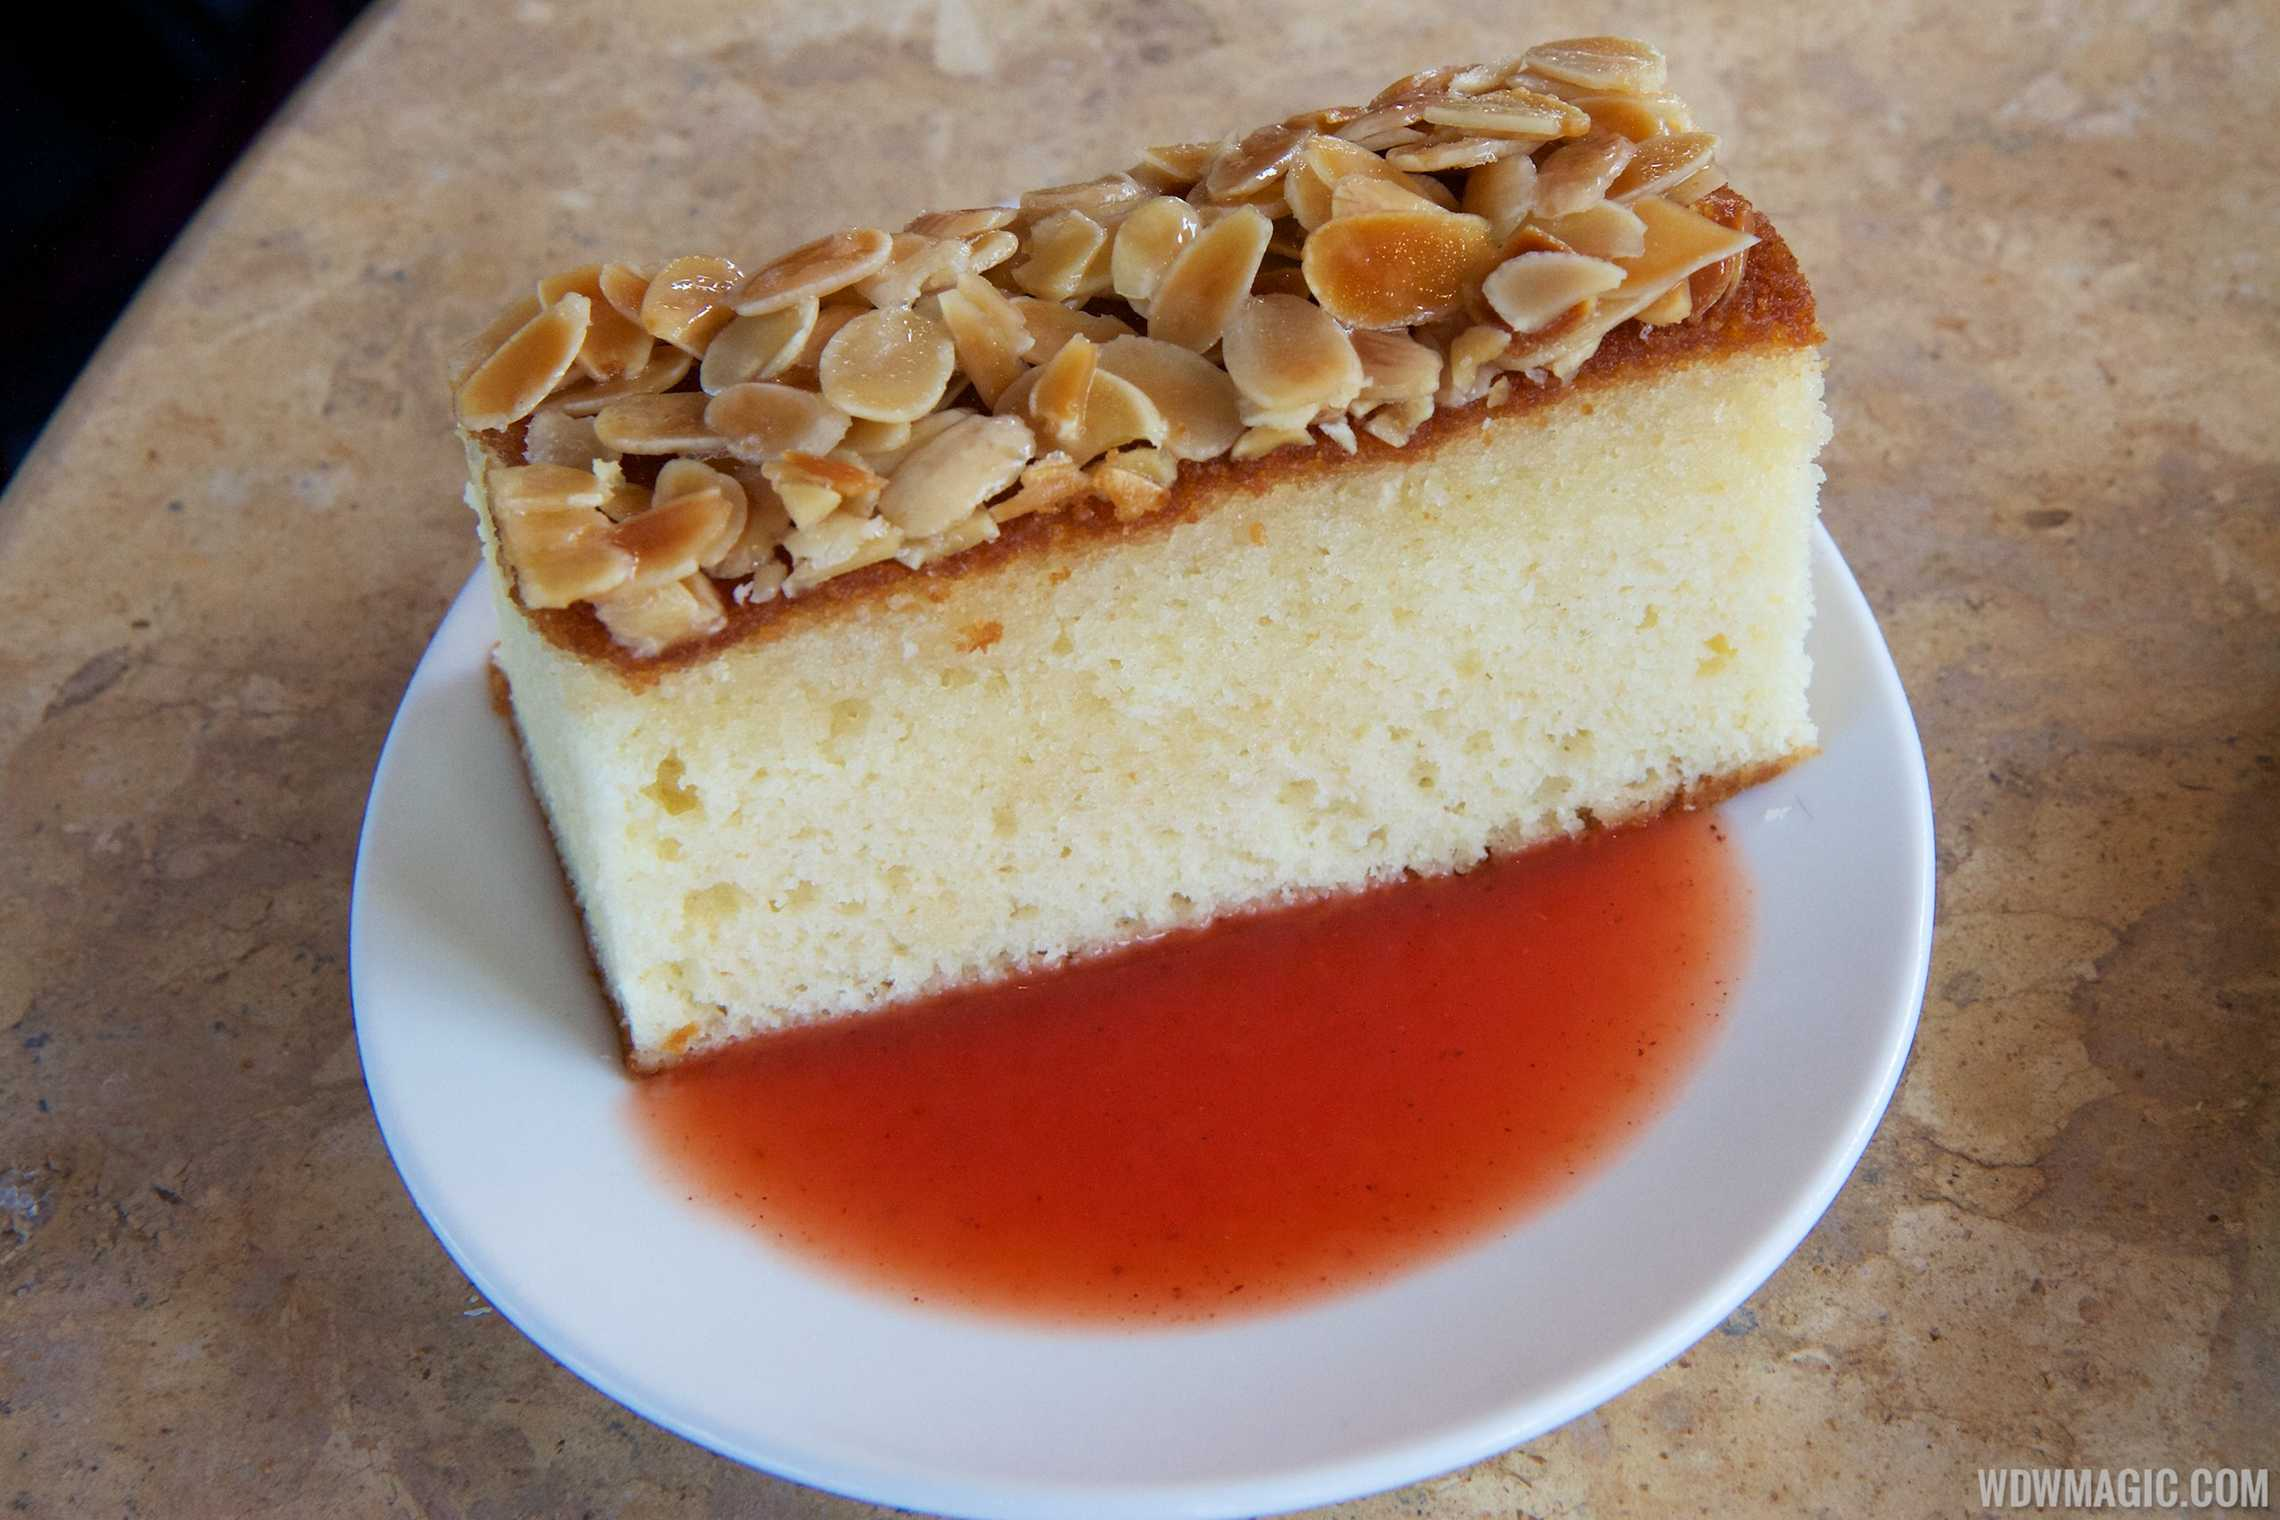 Spice Road Table - Almond and Rosewater Cake with blood orange sauce $7